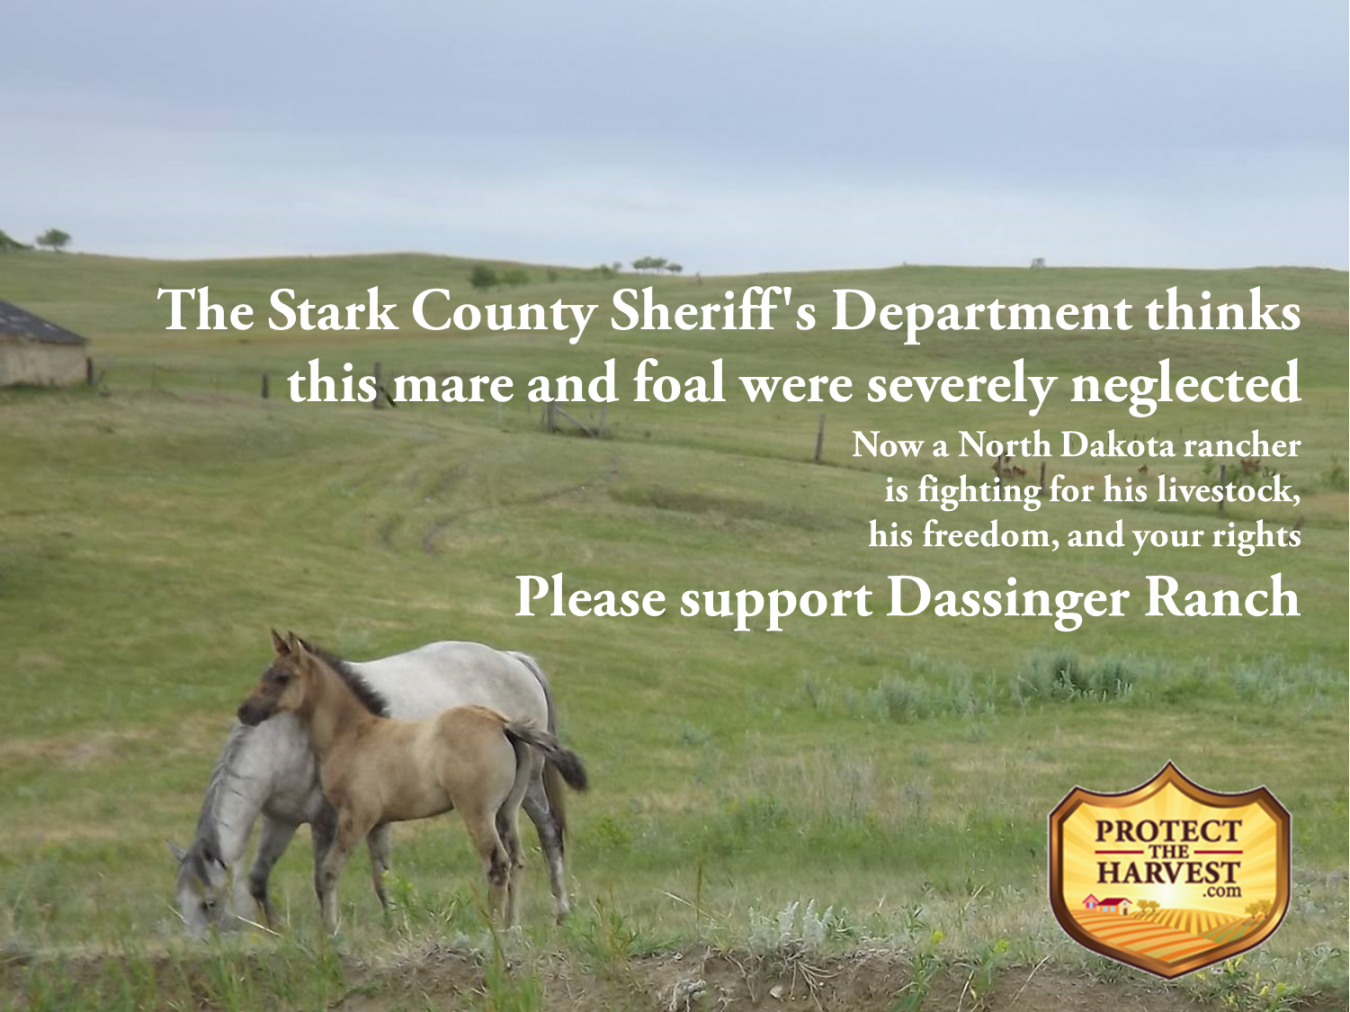 North Dakota Rancher – Fighting For His Ranch and Your Rights